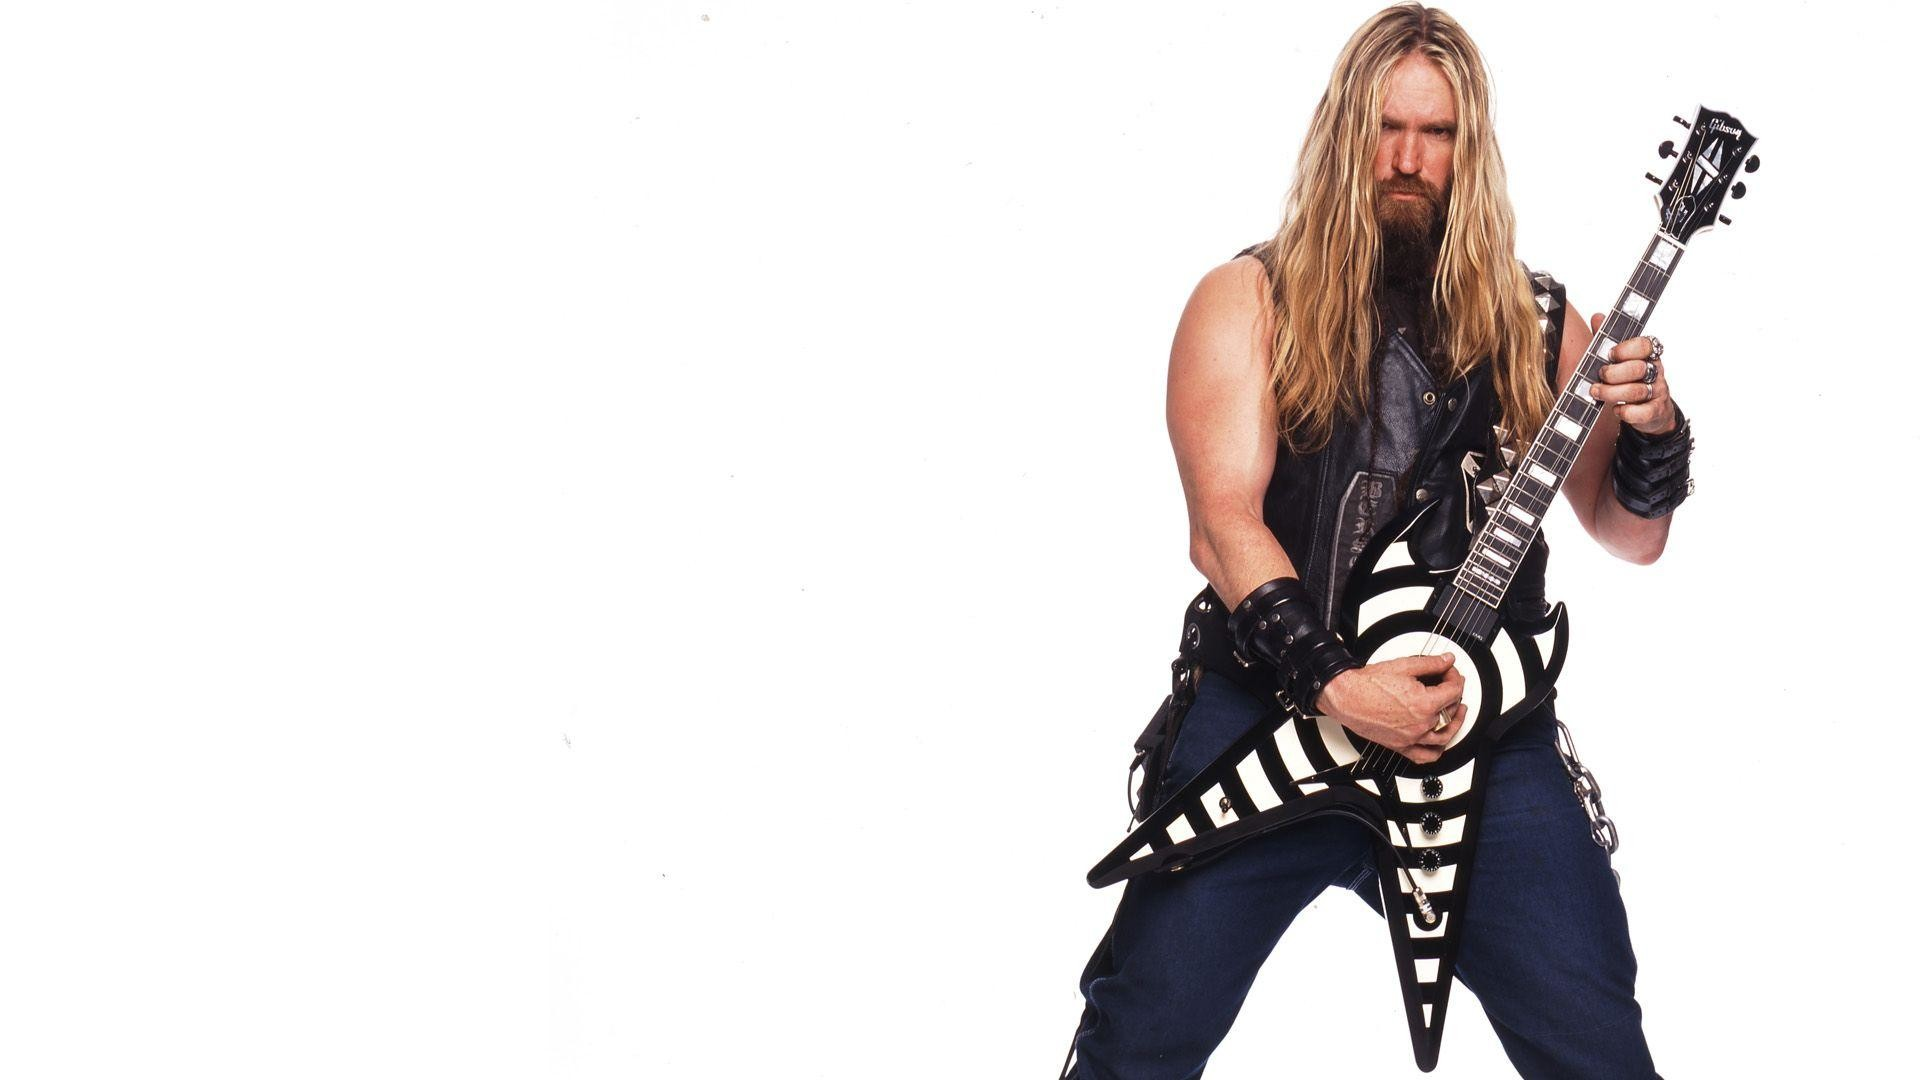 1920x1080 In Gallery: Zakk Wylde Wallpapers, 38 Zakk Wylde HD Wallpapers .